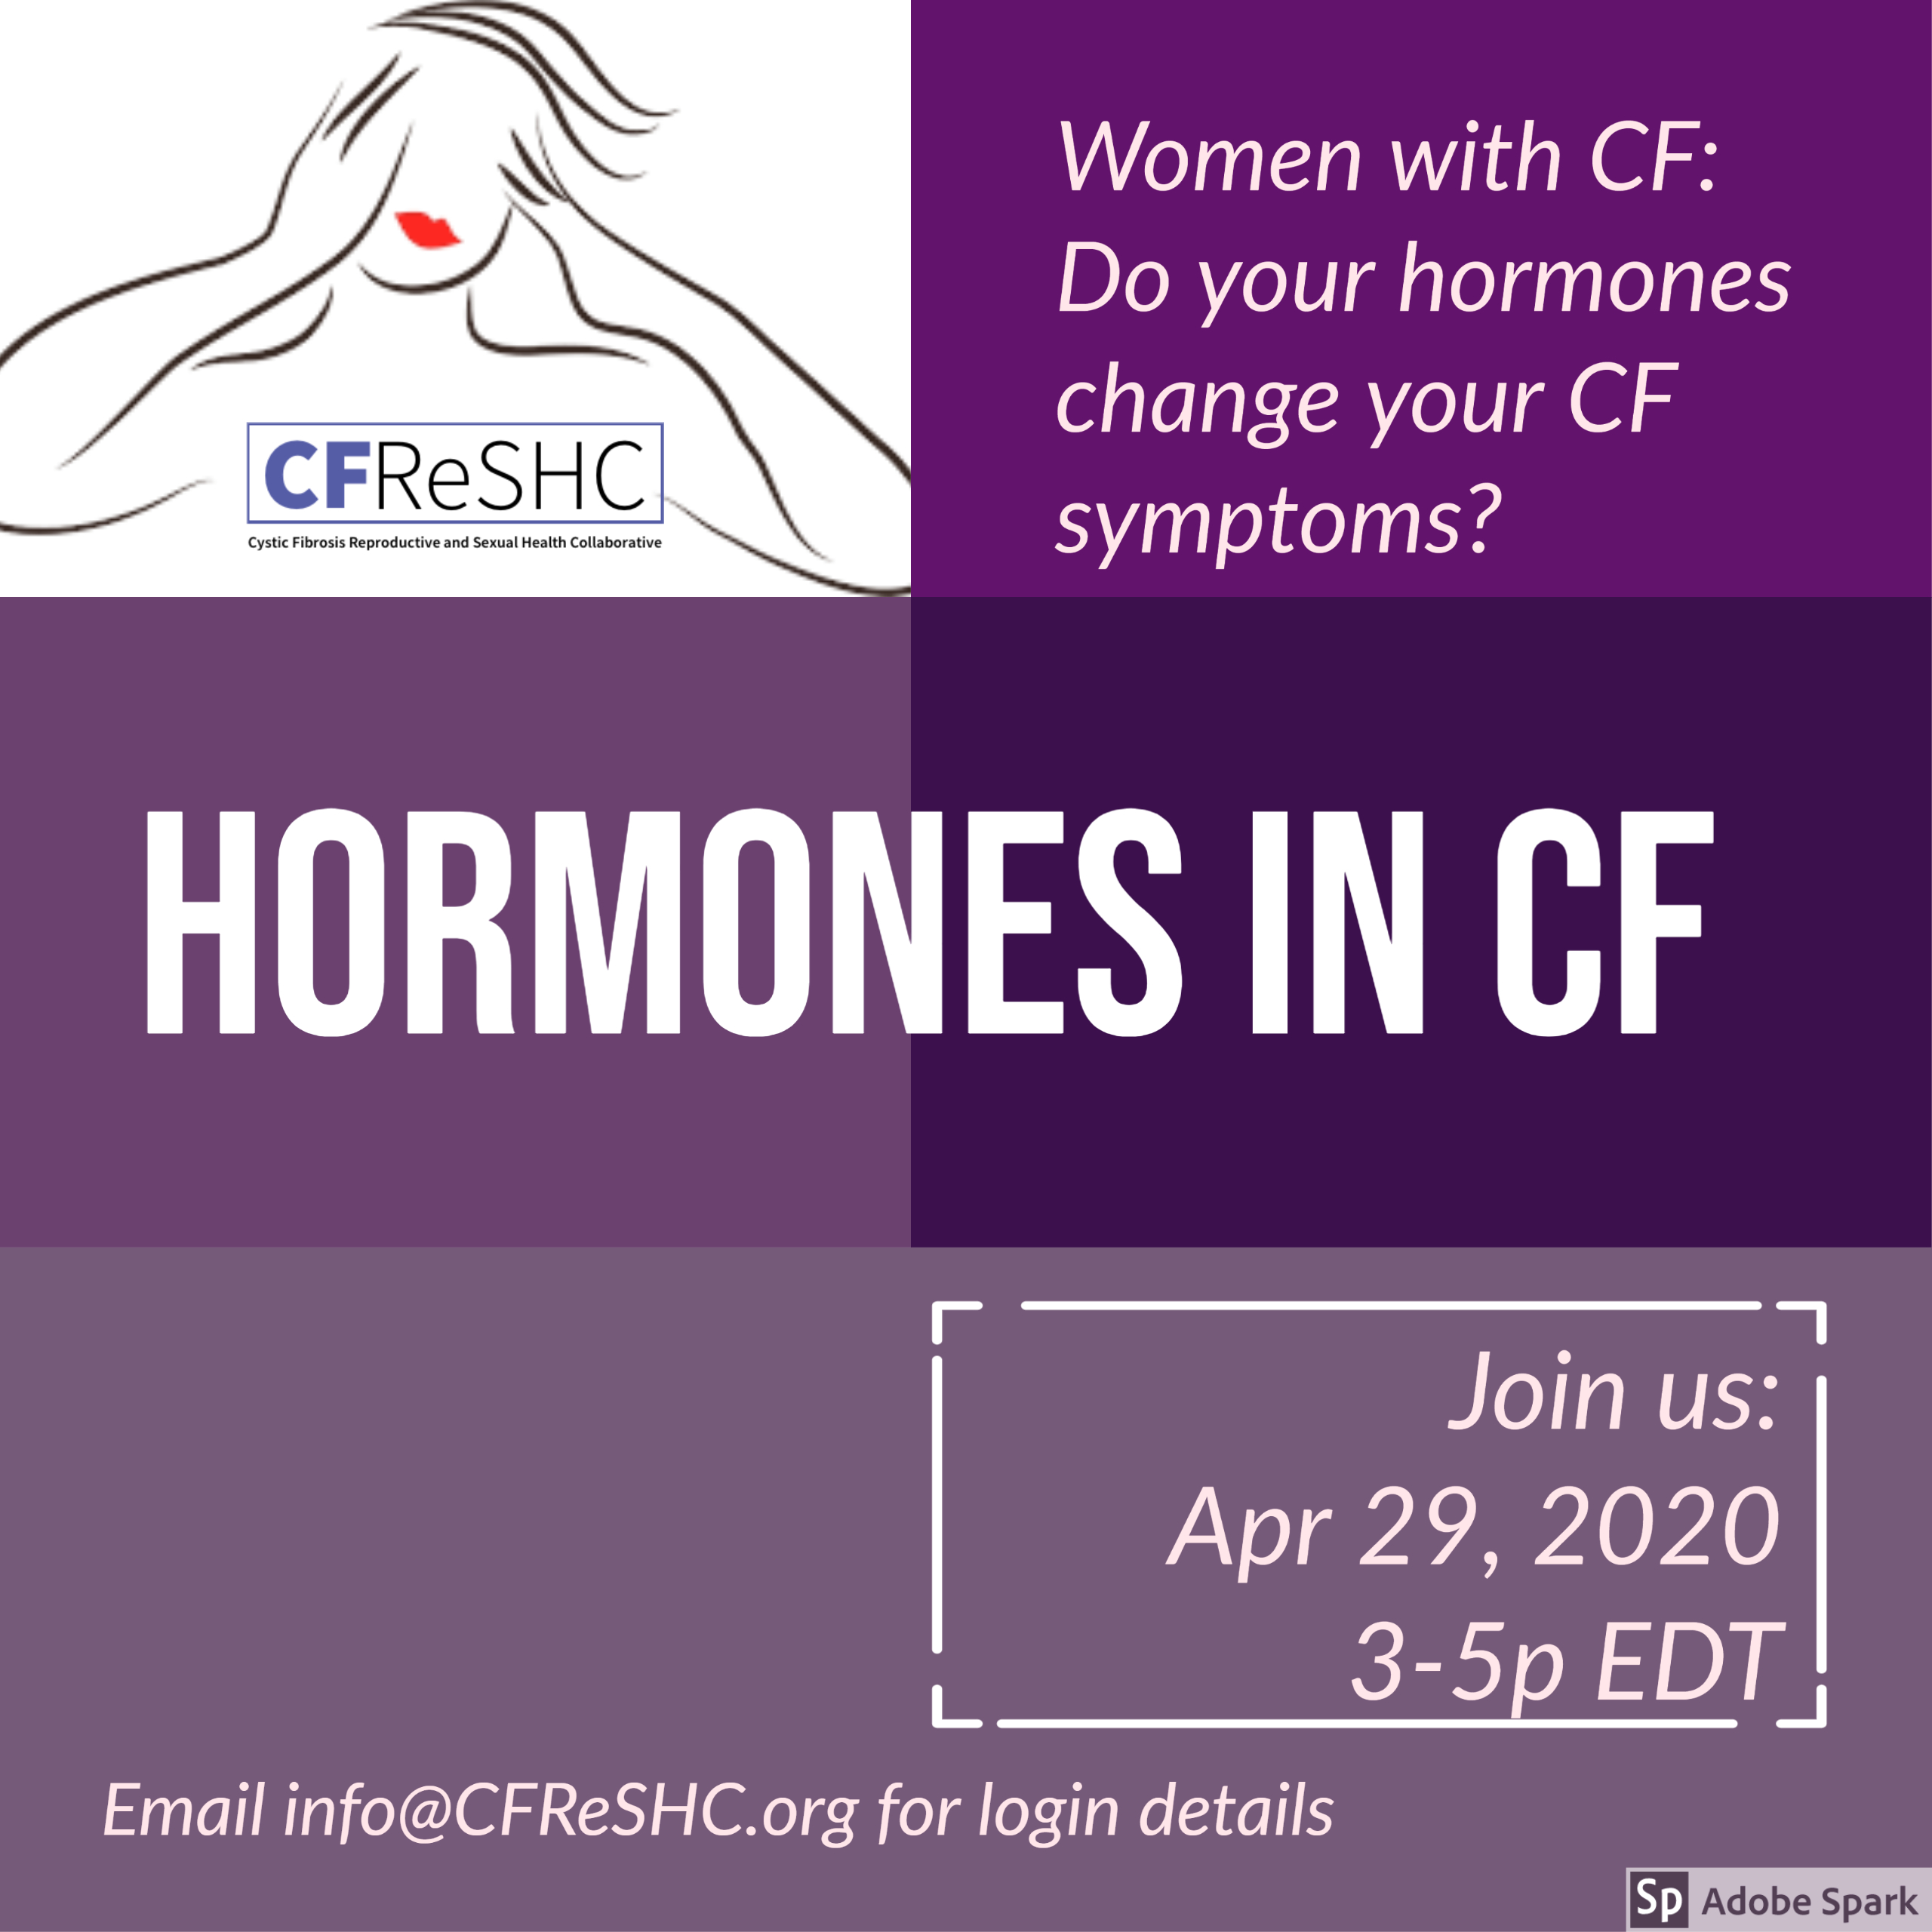 Hormones: Change in Symptoms & More